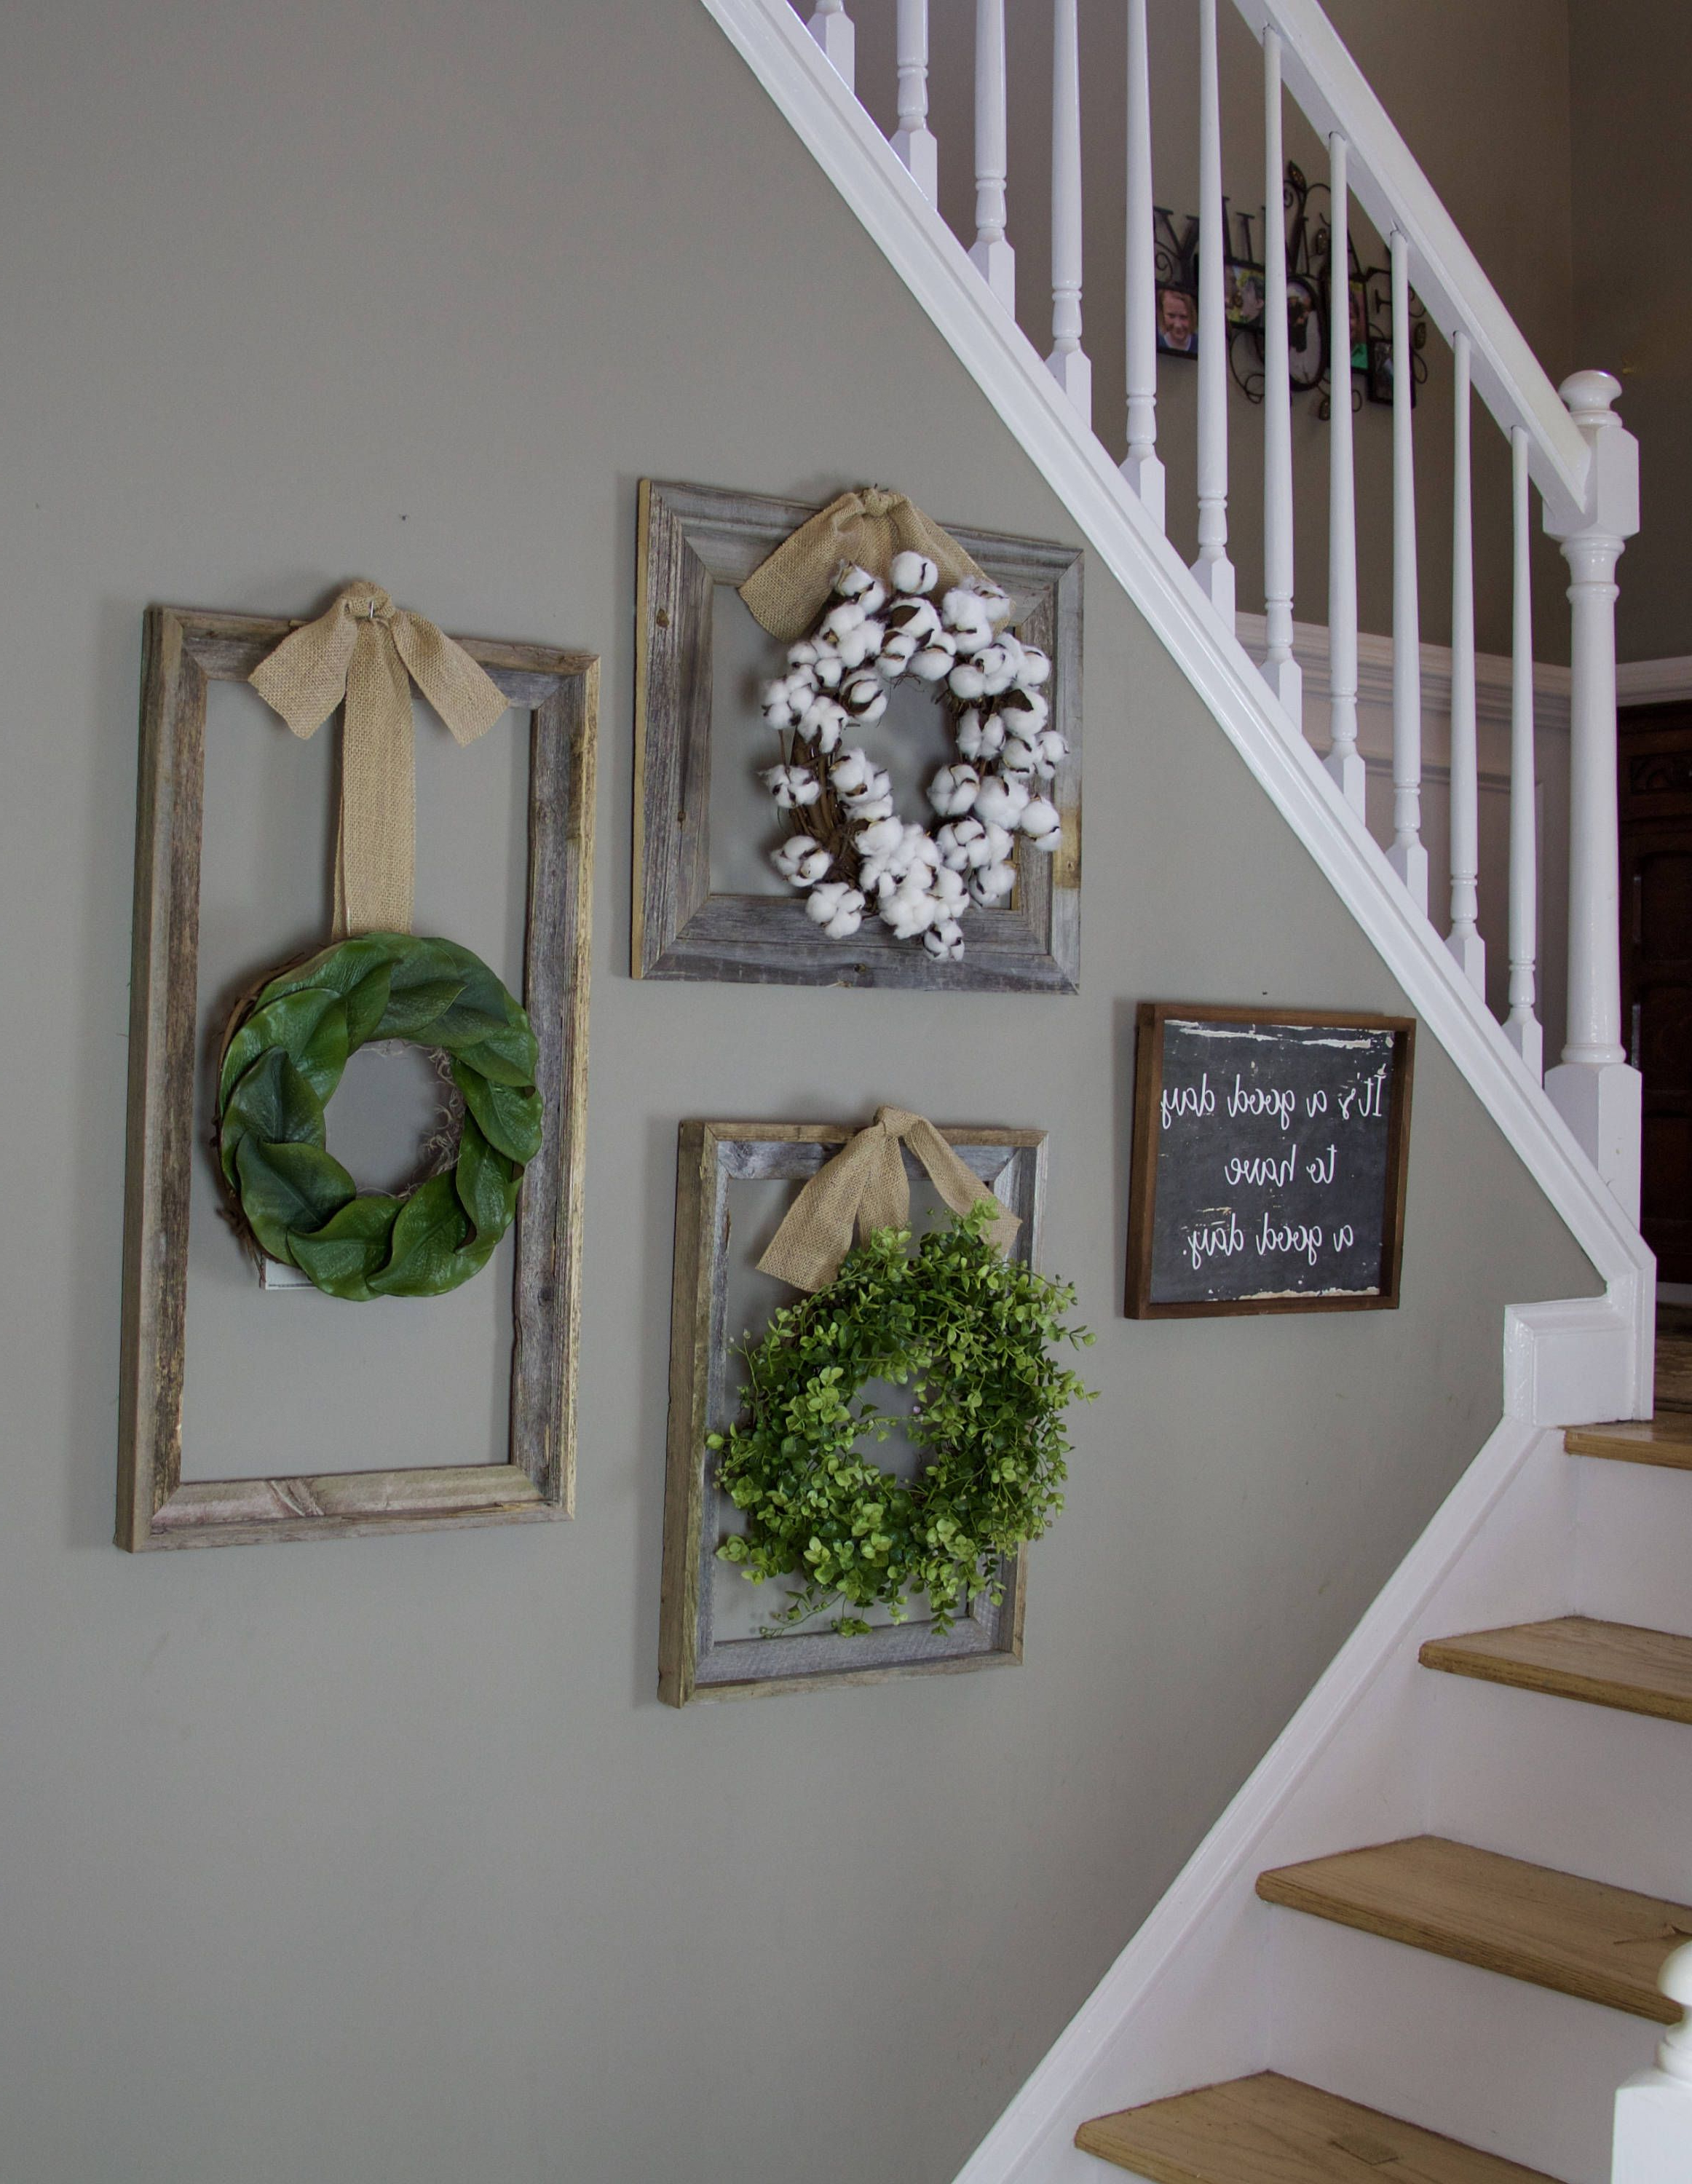 Best And Newest Farmhouse Wreath, Gallery Wall Decor, Rustic Decor, Fixer Upper With Regard To Floral Wreath Wood Framed Wall Decor (Gallery 19 of 20)